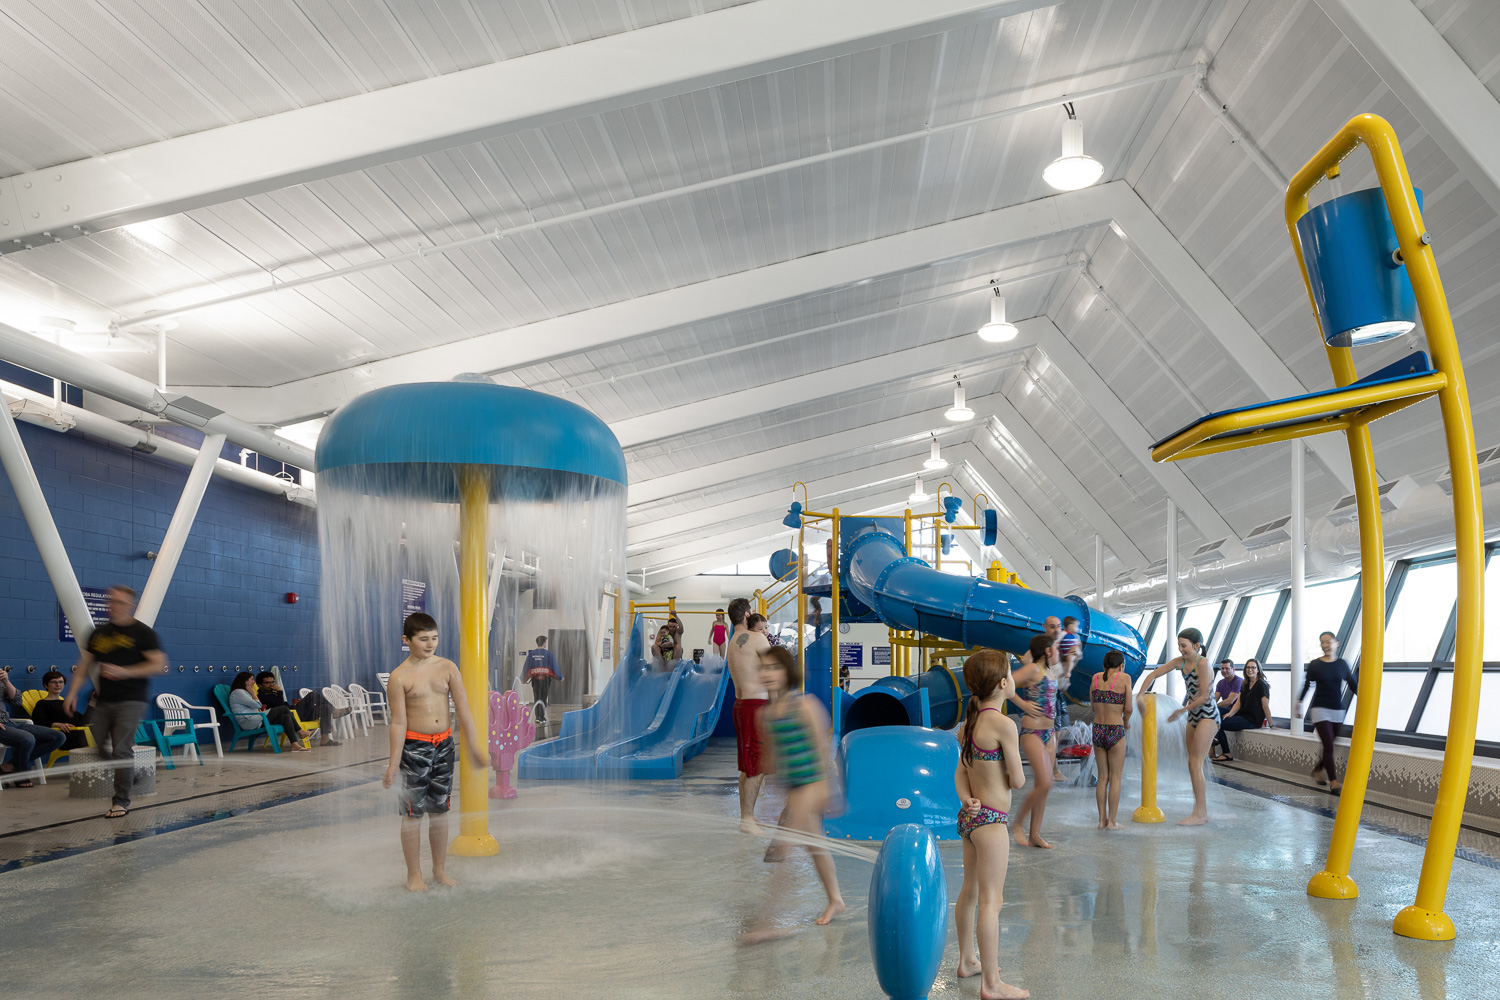 Seven Oaks Pool Splash Pad